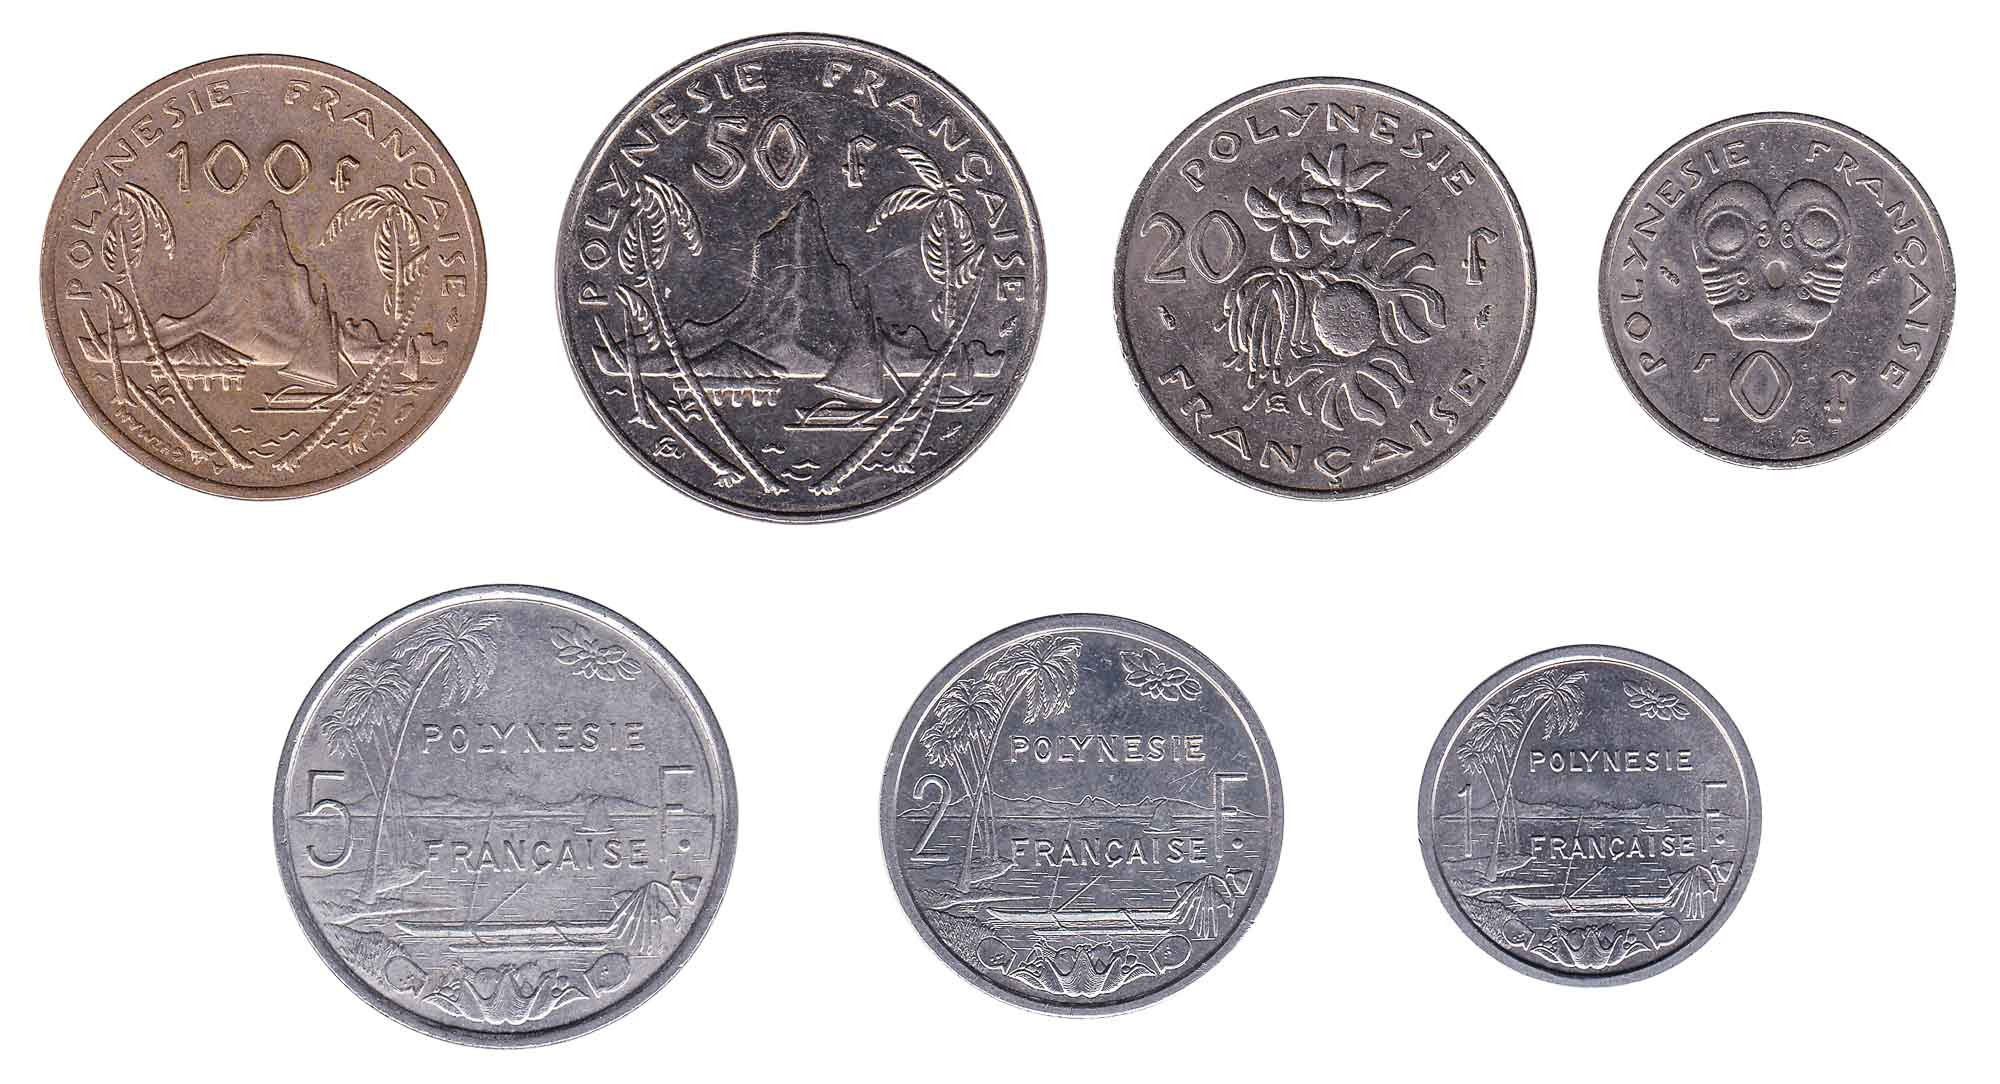 French Polynesian cfp franc coins